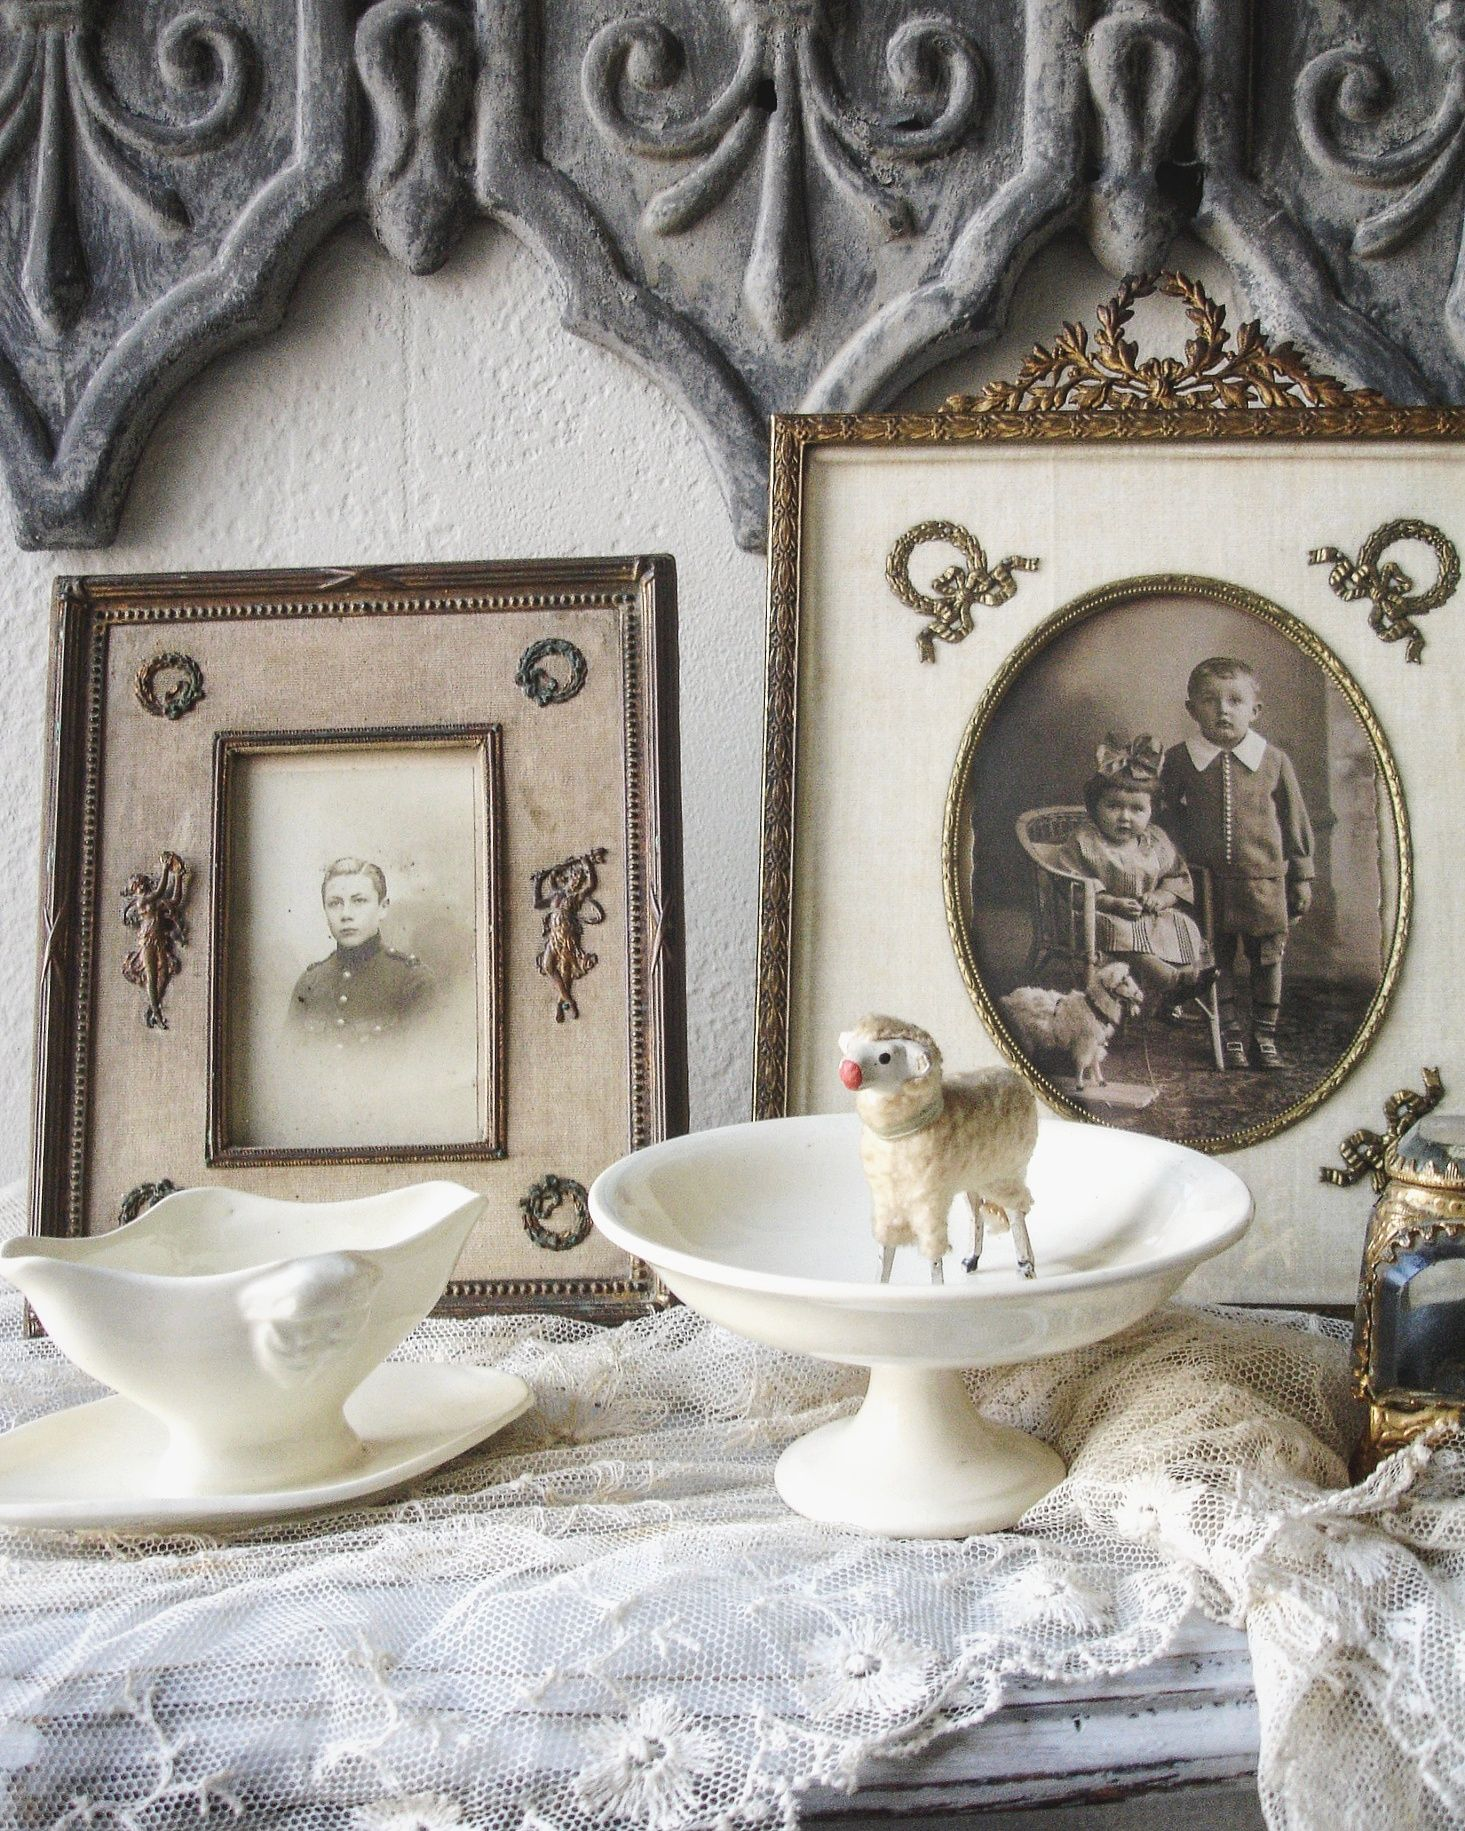 brocante charmante frames frenchframes empire antiqueframe shabby at home brocante. Black Bedroom Furniture Sets. Home Design Ideas